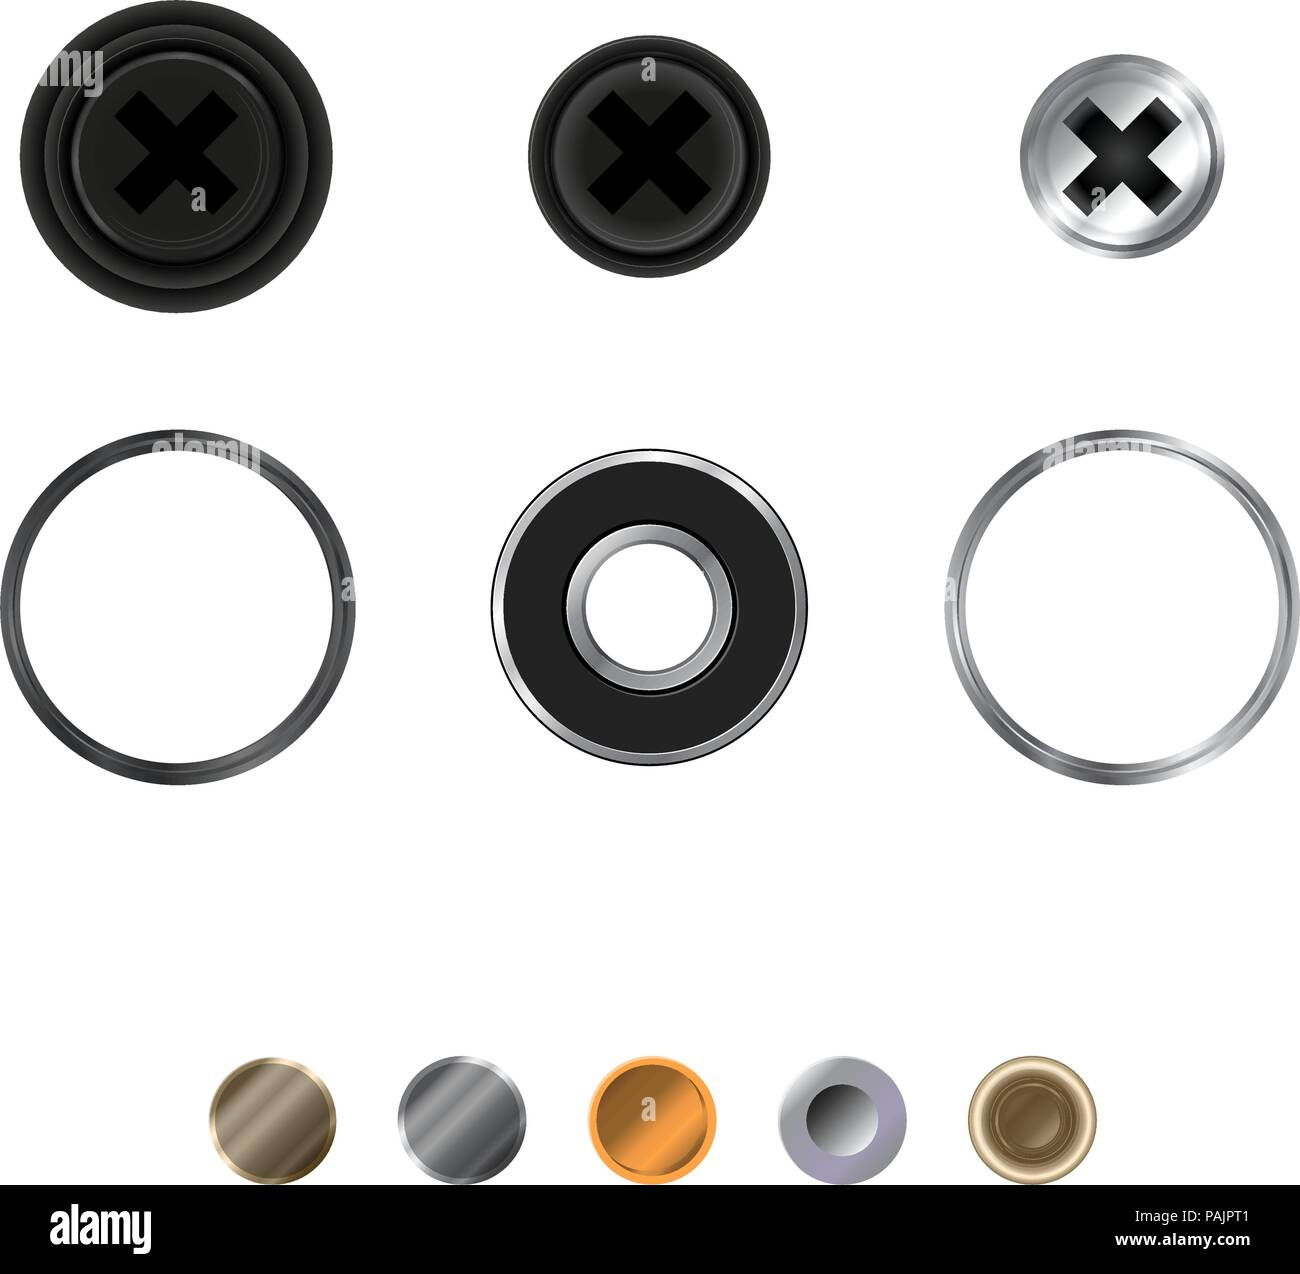 Screws, Washers and Rivets. Realistic Illustration, Top View. Vector Design Elements Set for You Design - Stock Image